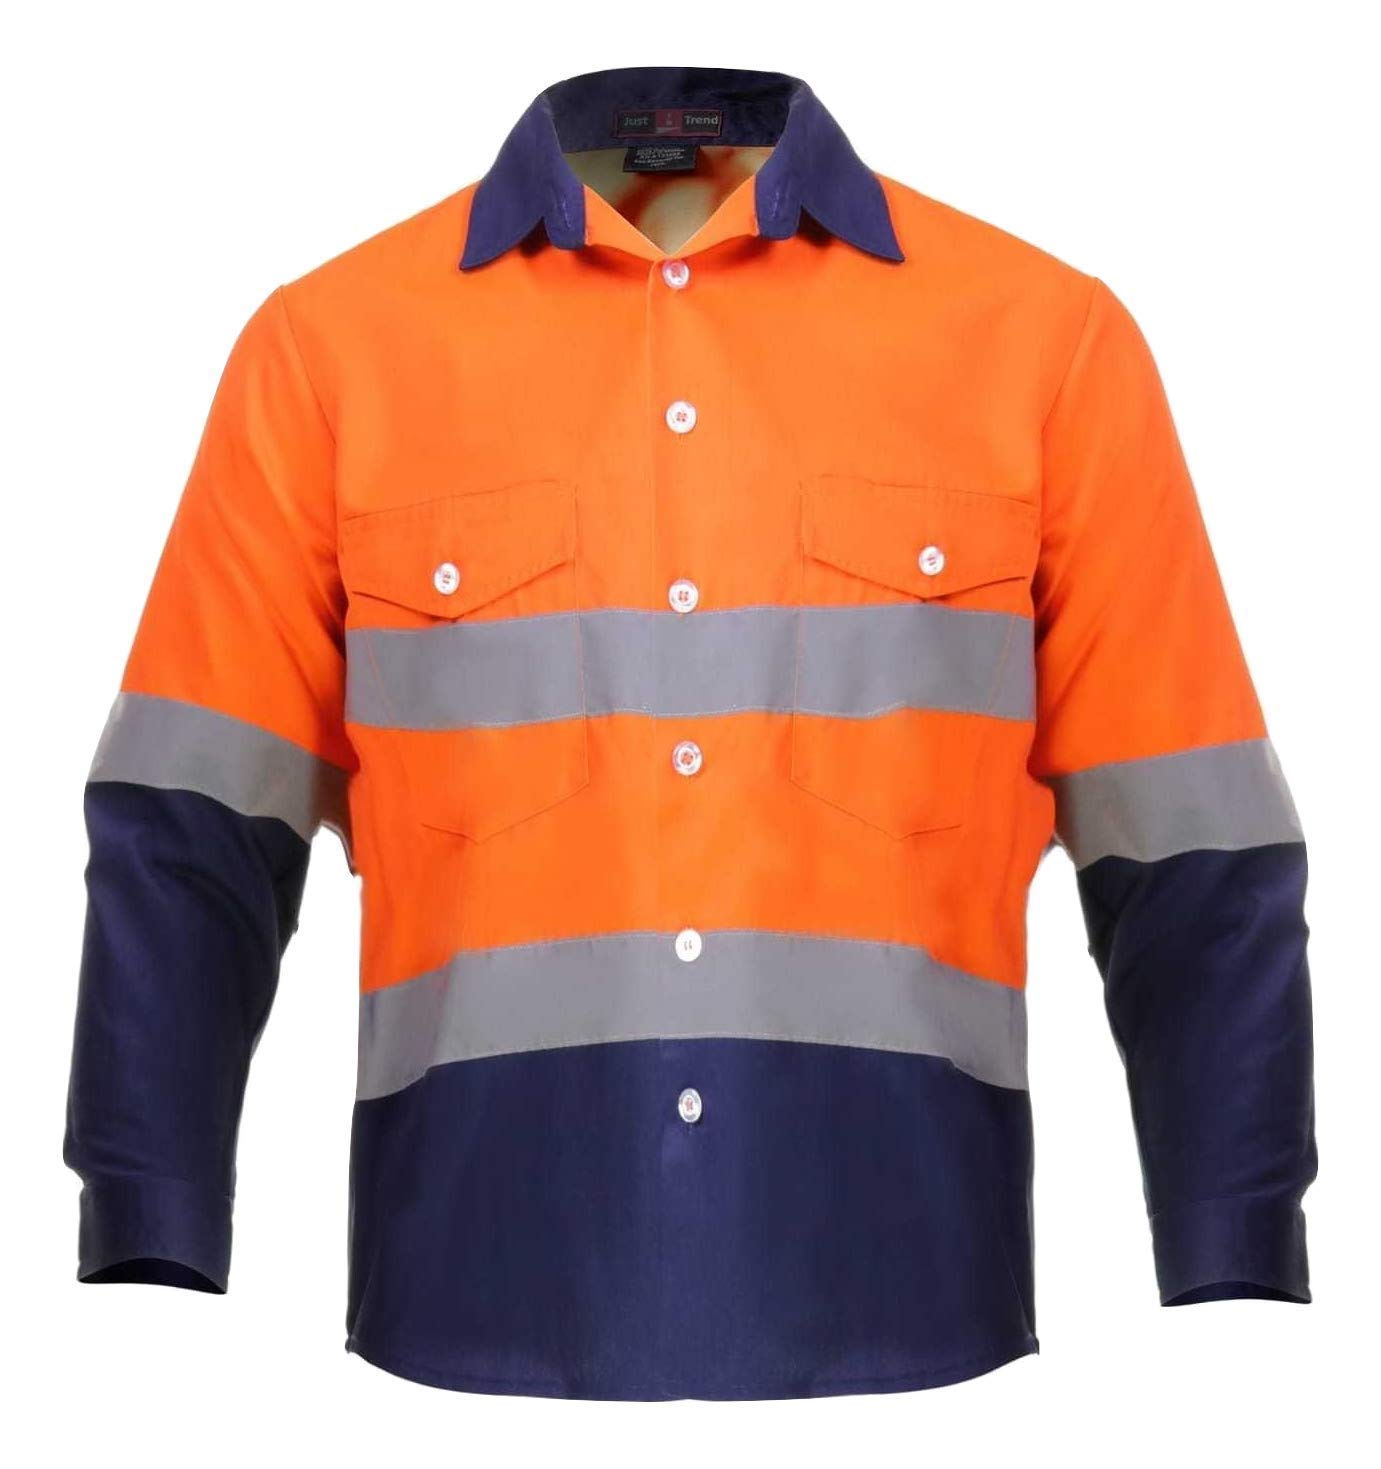 Just In Trend High Visibility Hi Vis Reflective Safety Work Shirts (4X-Large, Orange/Navy Blue)